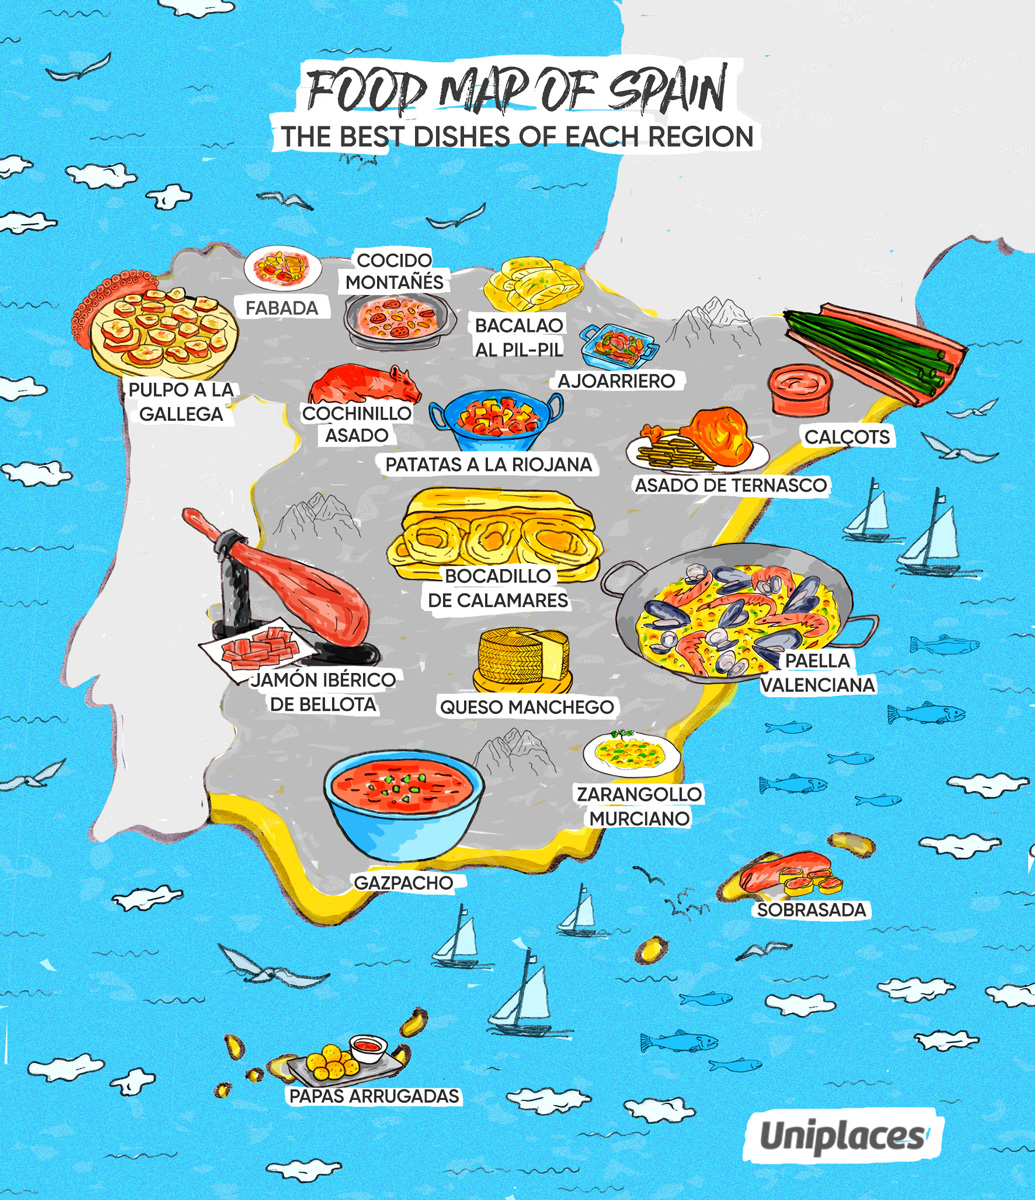 Regional food map infographic of Spain